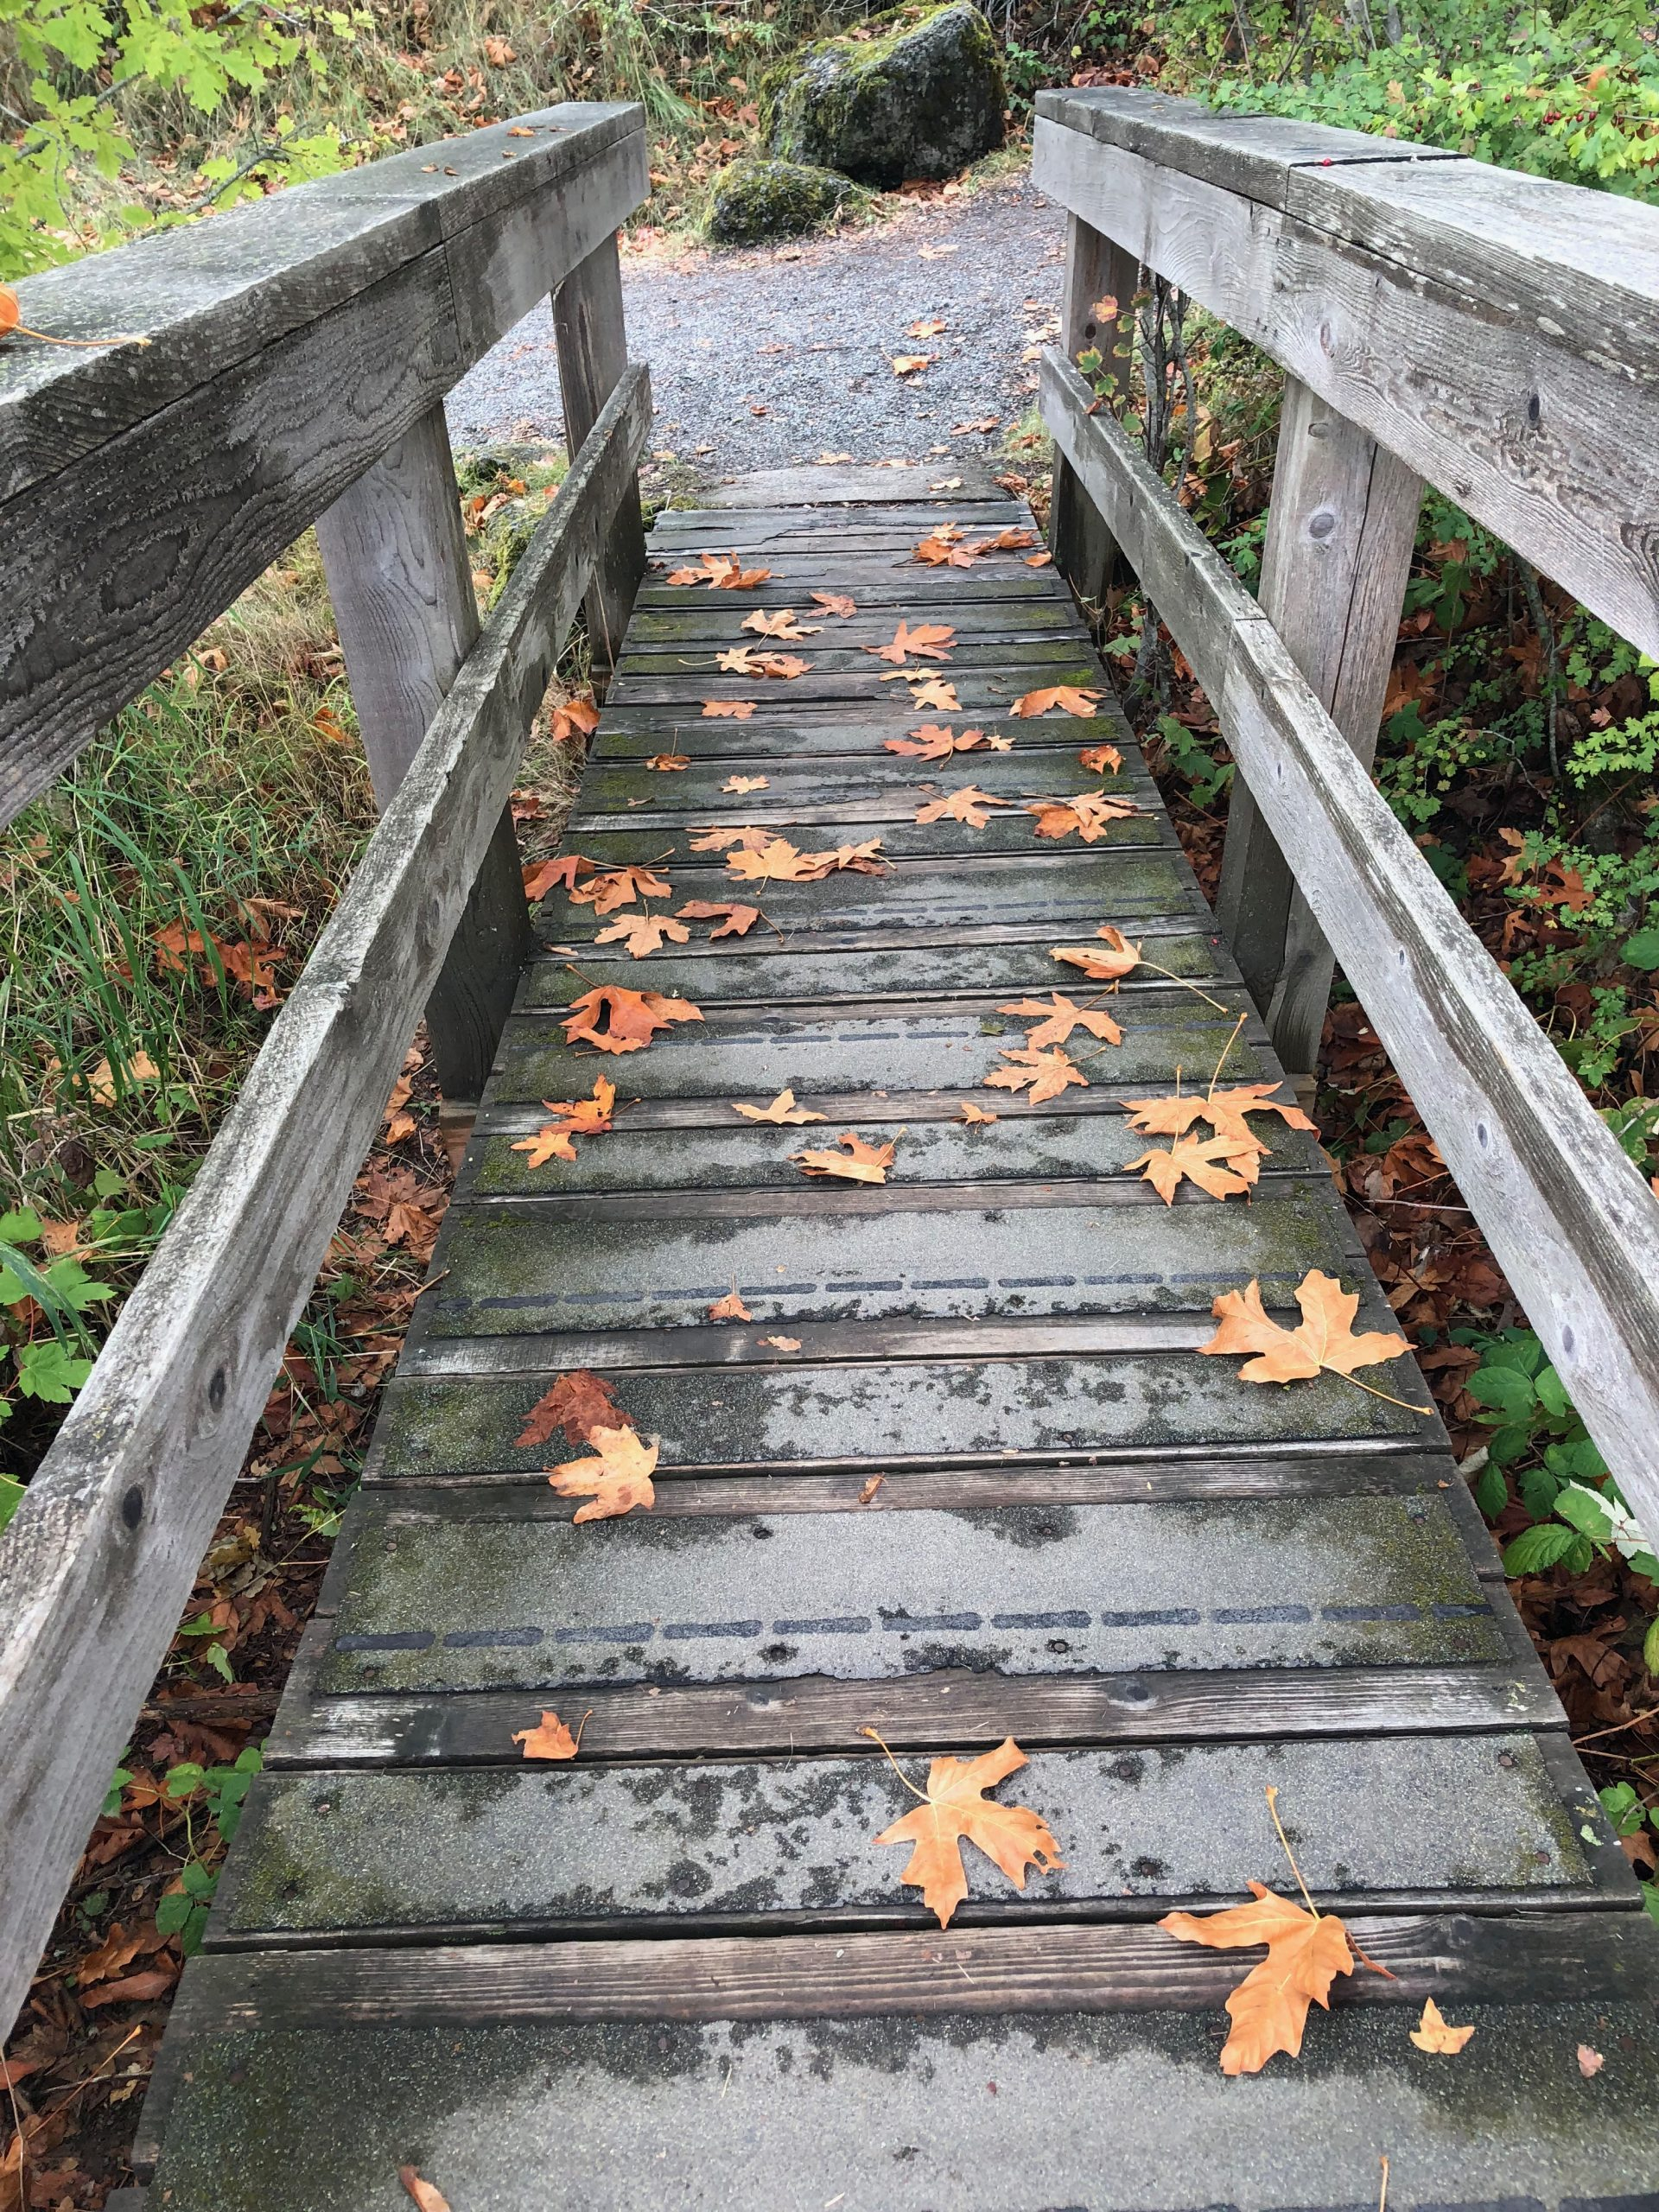 Image shows a wooden bridge in a frosted area. Serval orange fallen maple leafs have fallen on the bridge